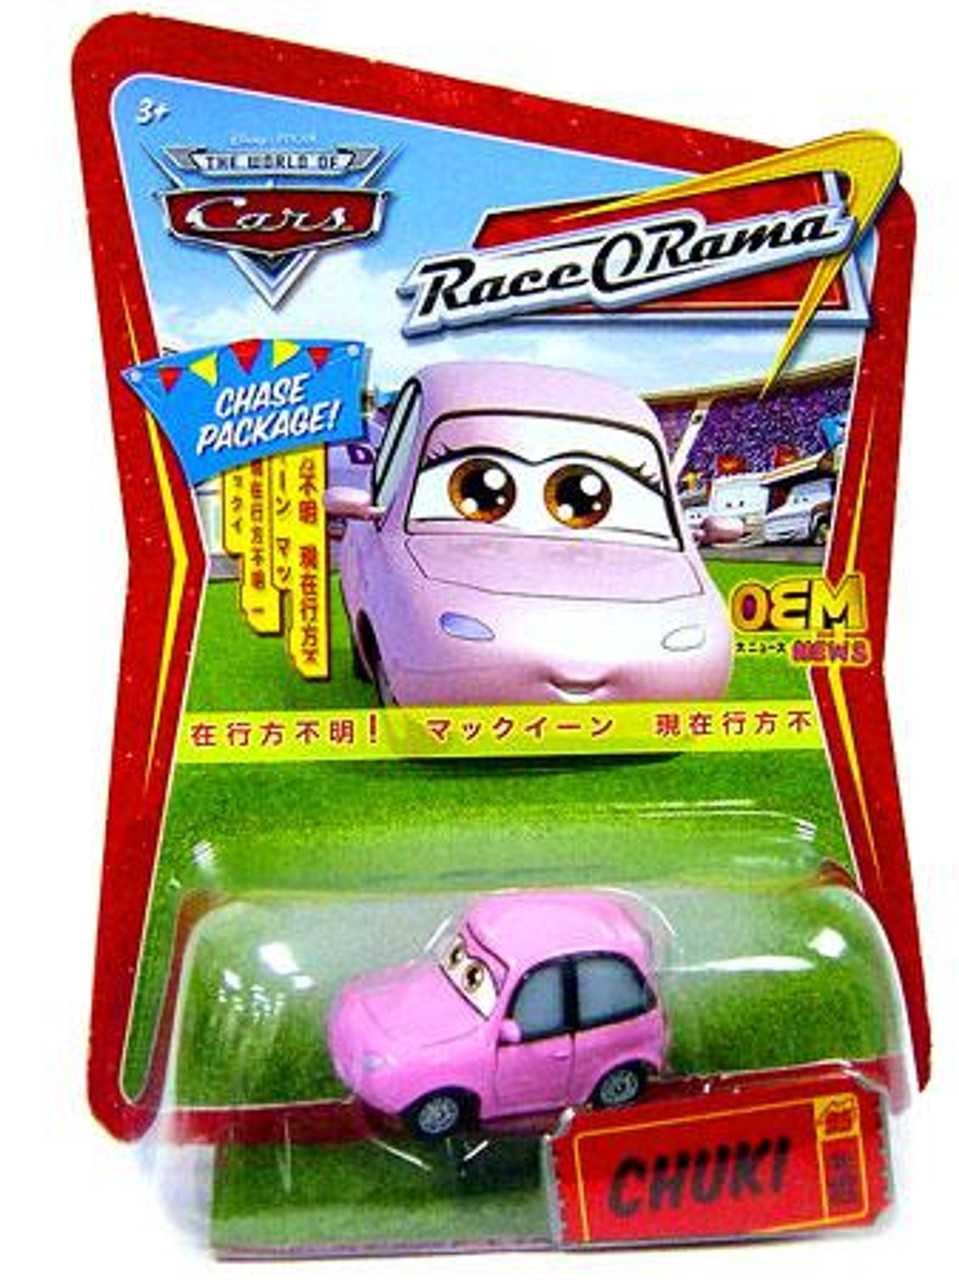 Disney Cars The World of Cars Race-O-Rama Chuki Diecast Car [Chase Package]